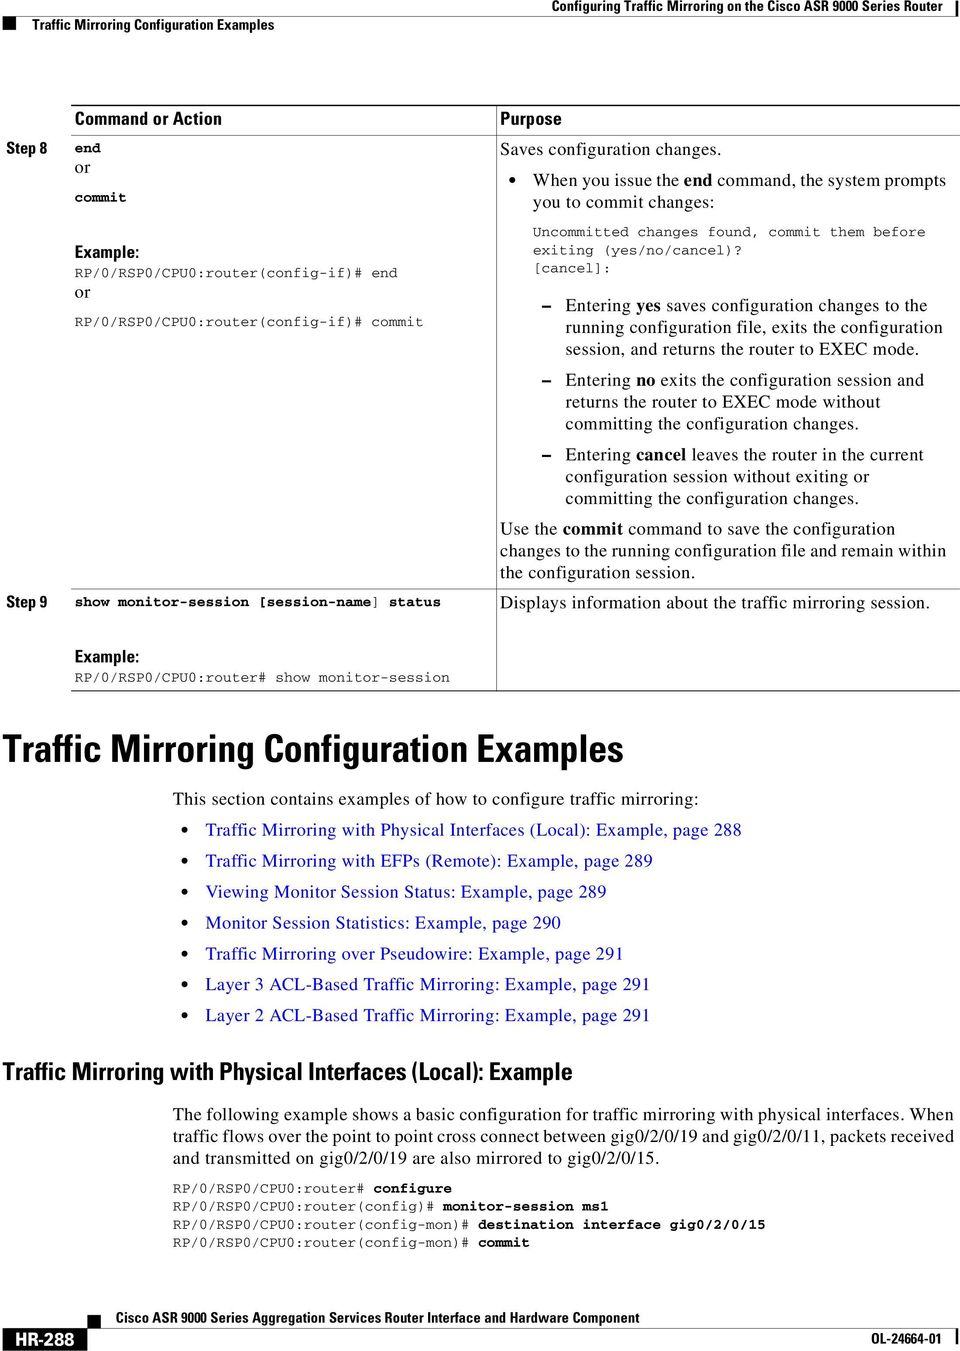 Configuring Traffic Mirroring on the Cisco ASR 9000 Series